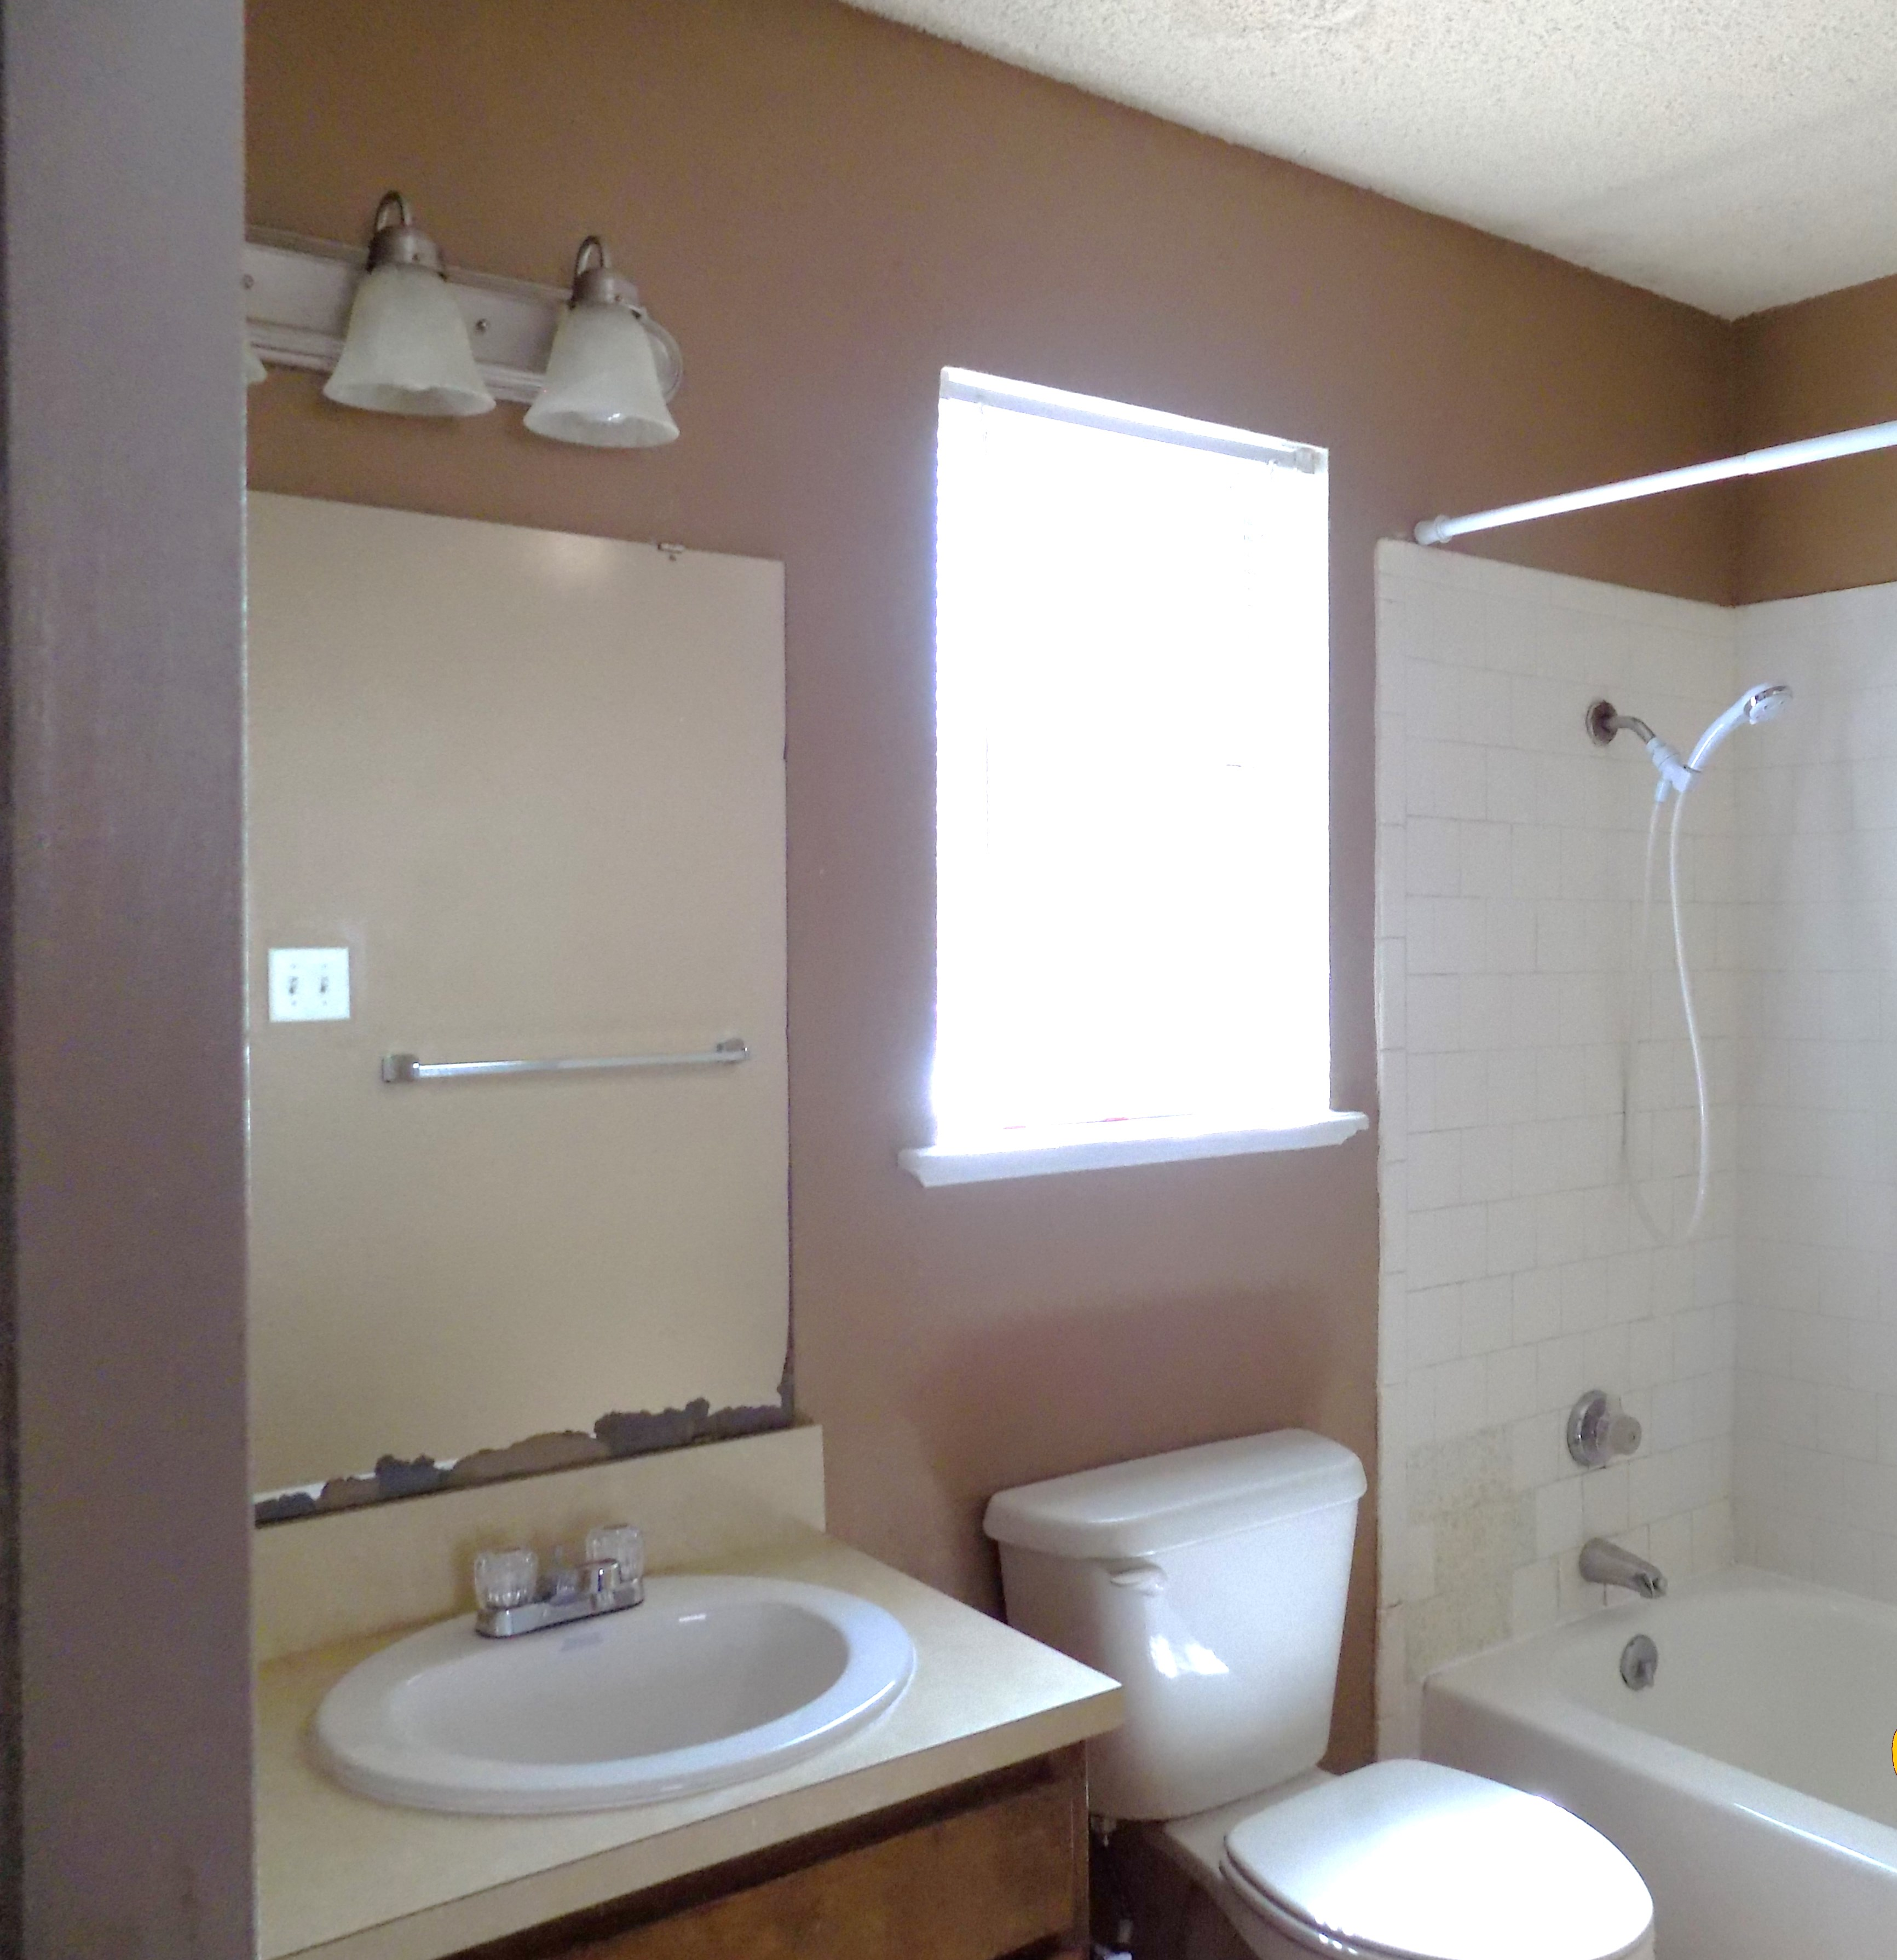 Northgate Village Apartments: Northgate Main Place :: Excelle Properties